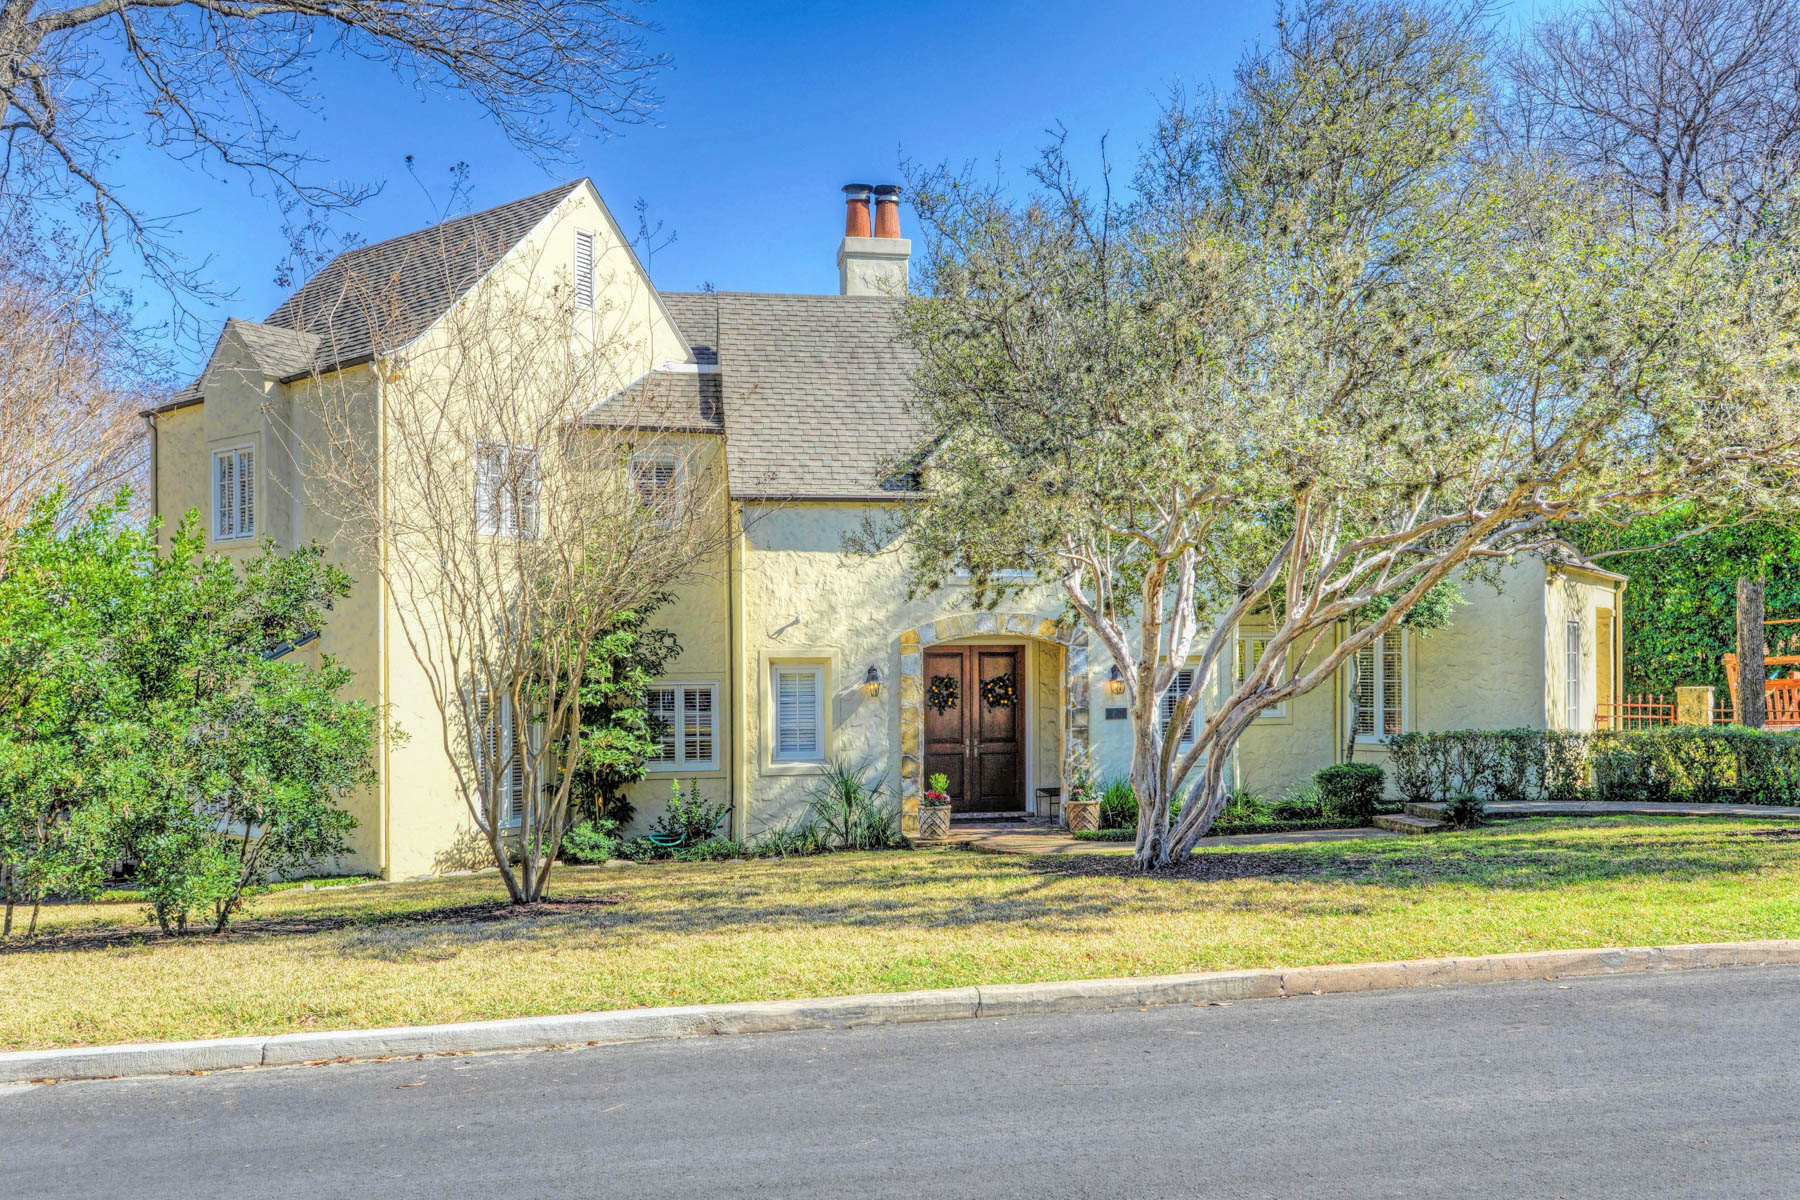 Single Family Home for Sale at Beautifully Designed Home in Alamo Heights 203 Mayflower Alamo Heights, San Antonio, Texas, 78209 United States